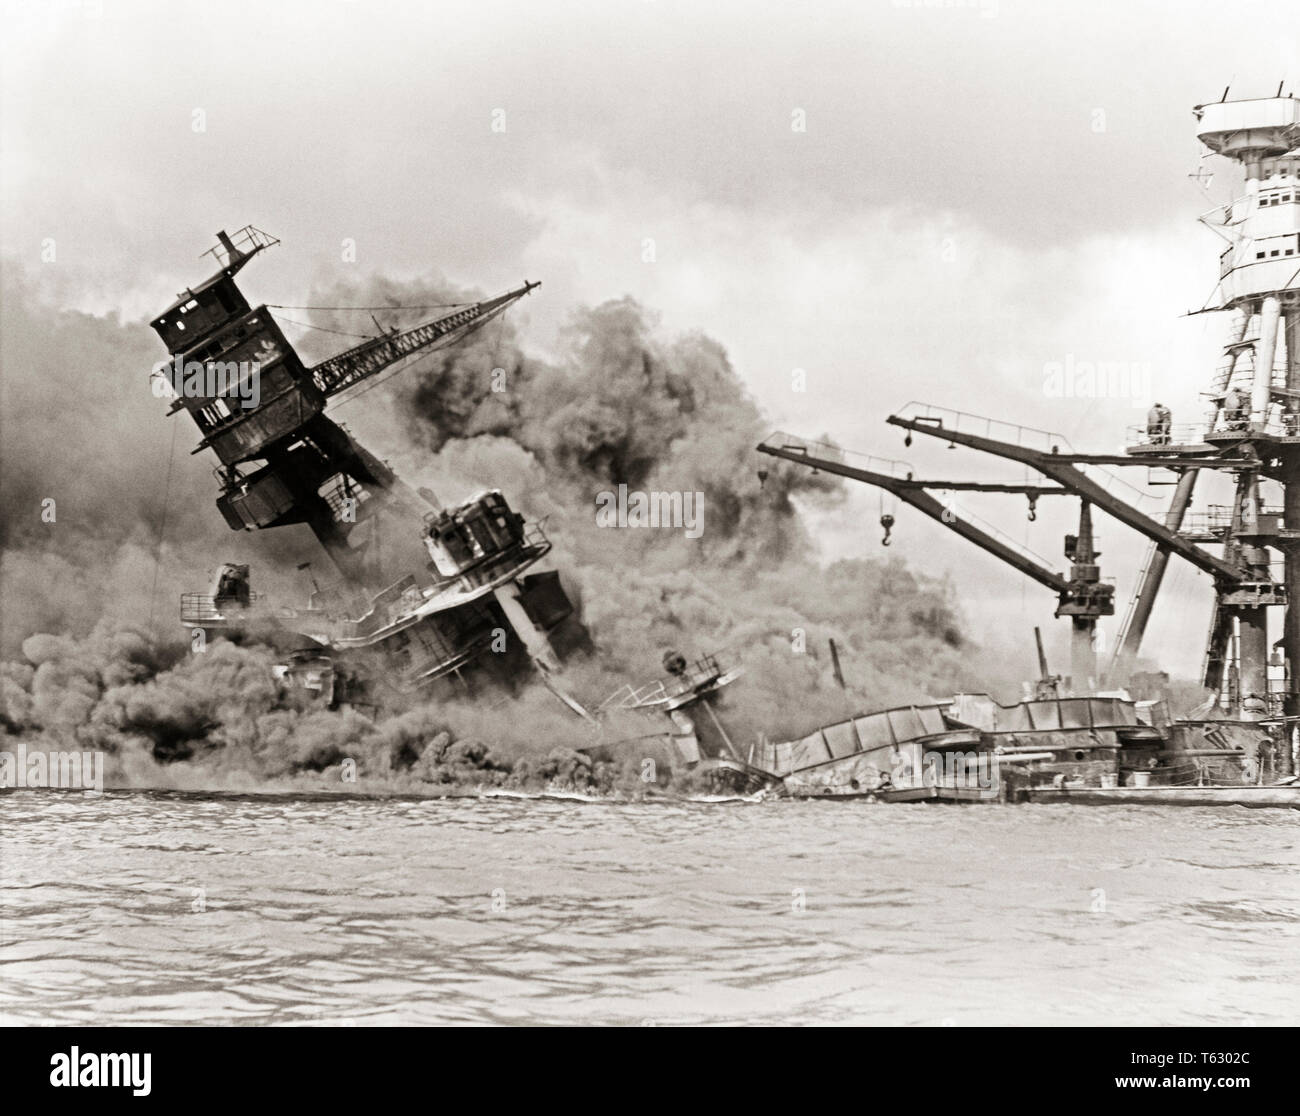 1940s DECEMBER 7 1941 BATTLESHIP USS ARIZONA BURNS & SINKS DARK CLOUD OF SMOKE AFTER ATTACK BY JAPANESE PEARL HARBOR HAWAII USA - q74682 CPC001 HARS AFTER B&W SADNESS SINKING NORTH AMERICA HARBOR NORTH AMERICAN DISASTER ISLANDS NAVAL COURAGE WORLD WARS WORLD WAR WORLD WAR TWO WORLD WAR II DECEMBER HI BATTLESHIP ARIZONA MOBILITY WORLD WAR 2 SOUTHWEST BURNS CONFLICTING SINKS USS 1941 BATTLING BLACK AND WHITE DECEMBER 7 HAWAIIAN ISLANDS INFAMY OLD FASHIONED PACIFIC ISLAND Stock Photo